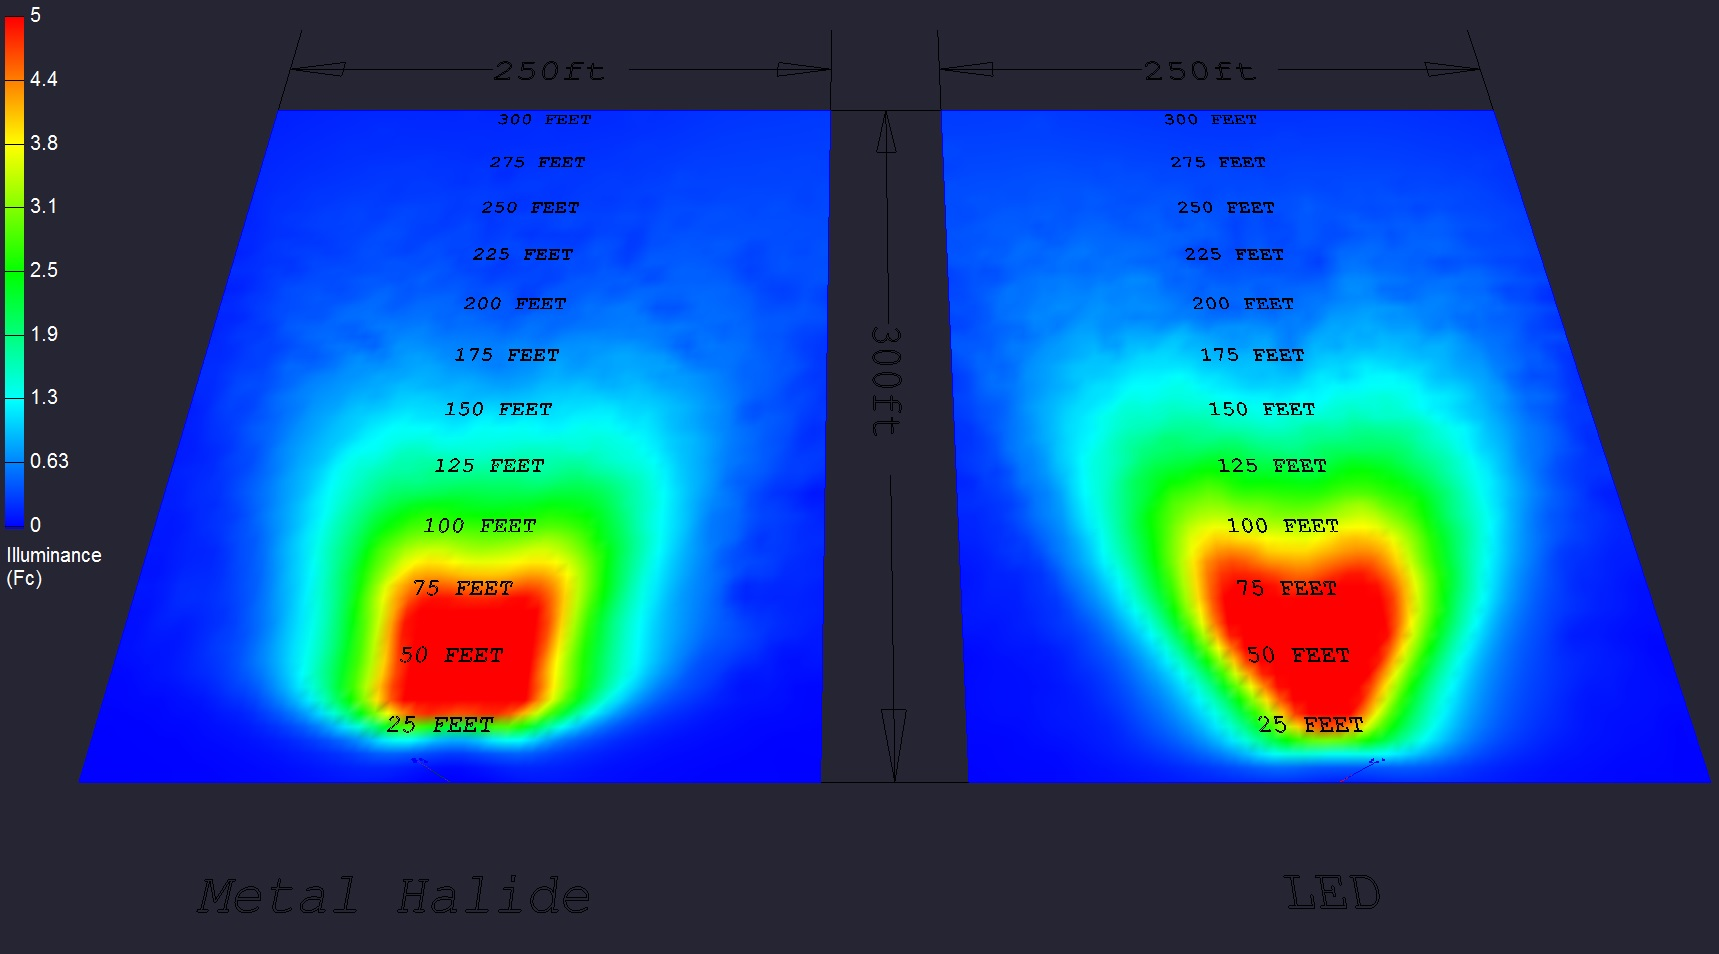 LED Light Plant Comparison to Metal Halide